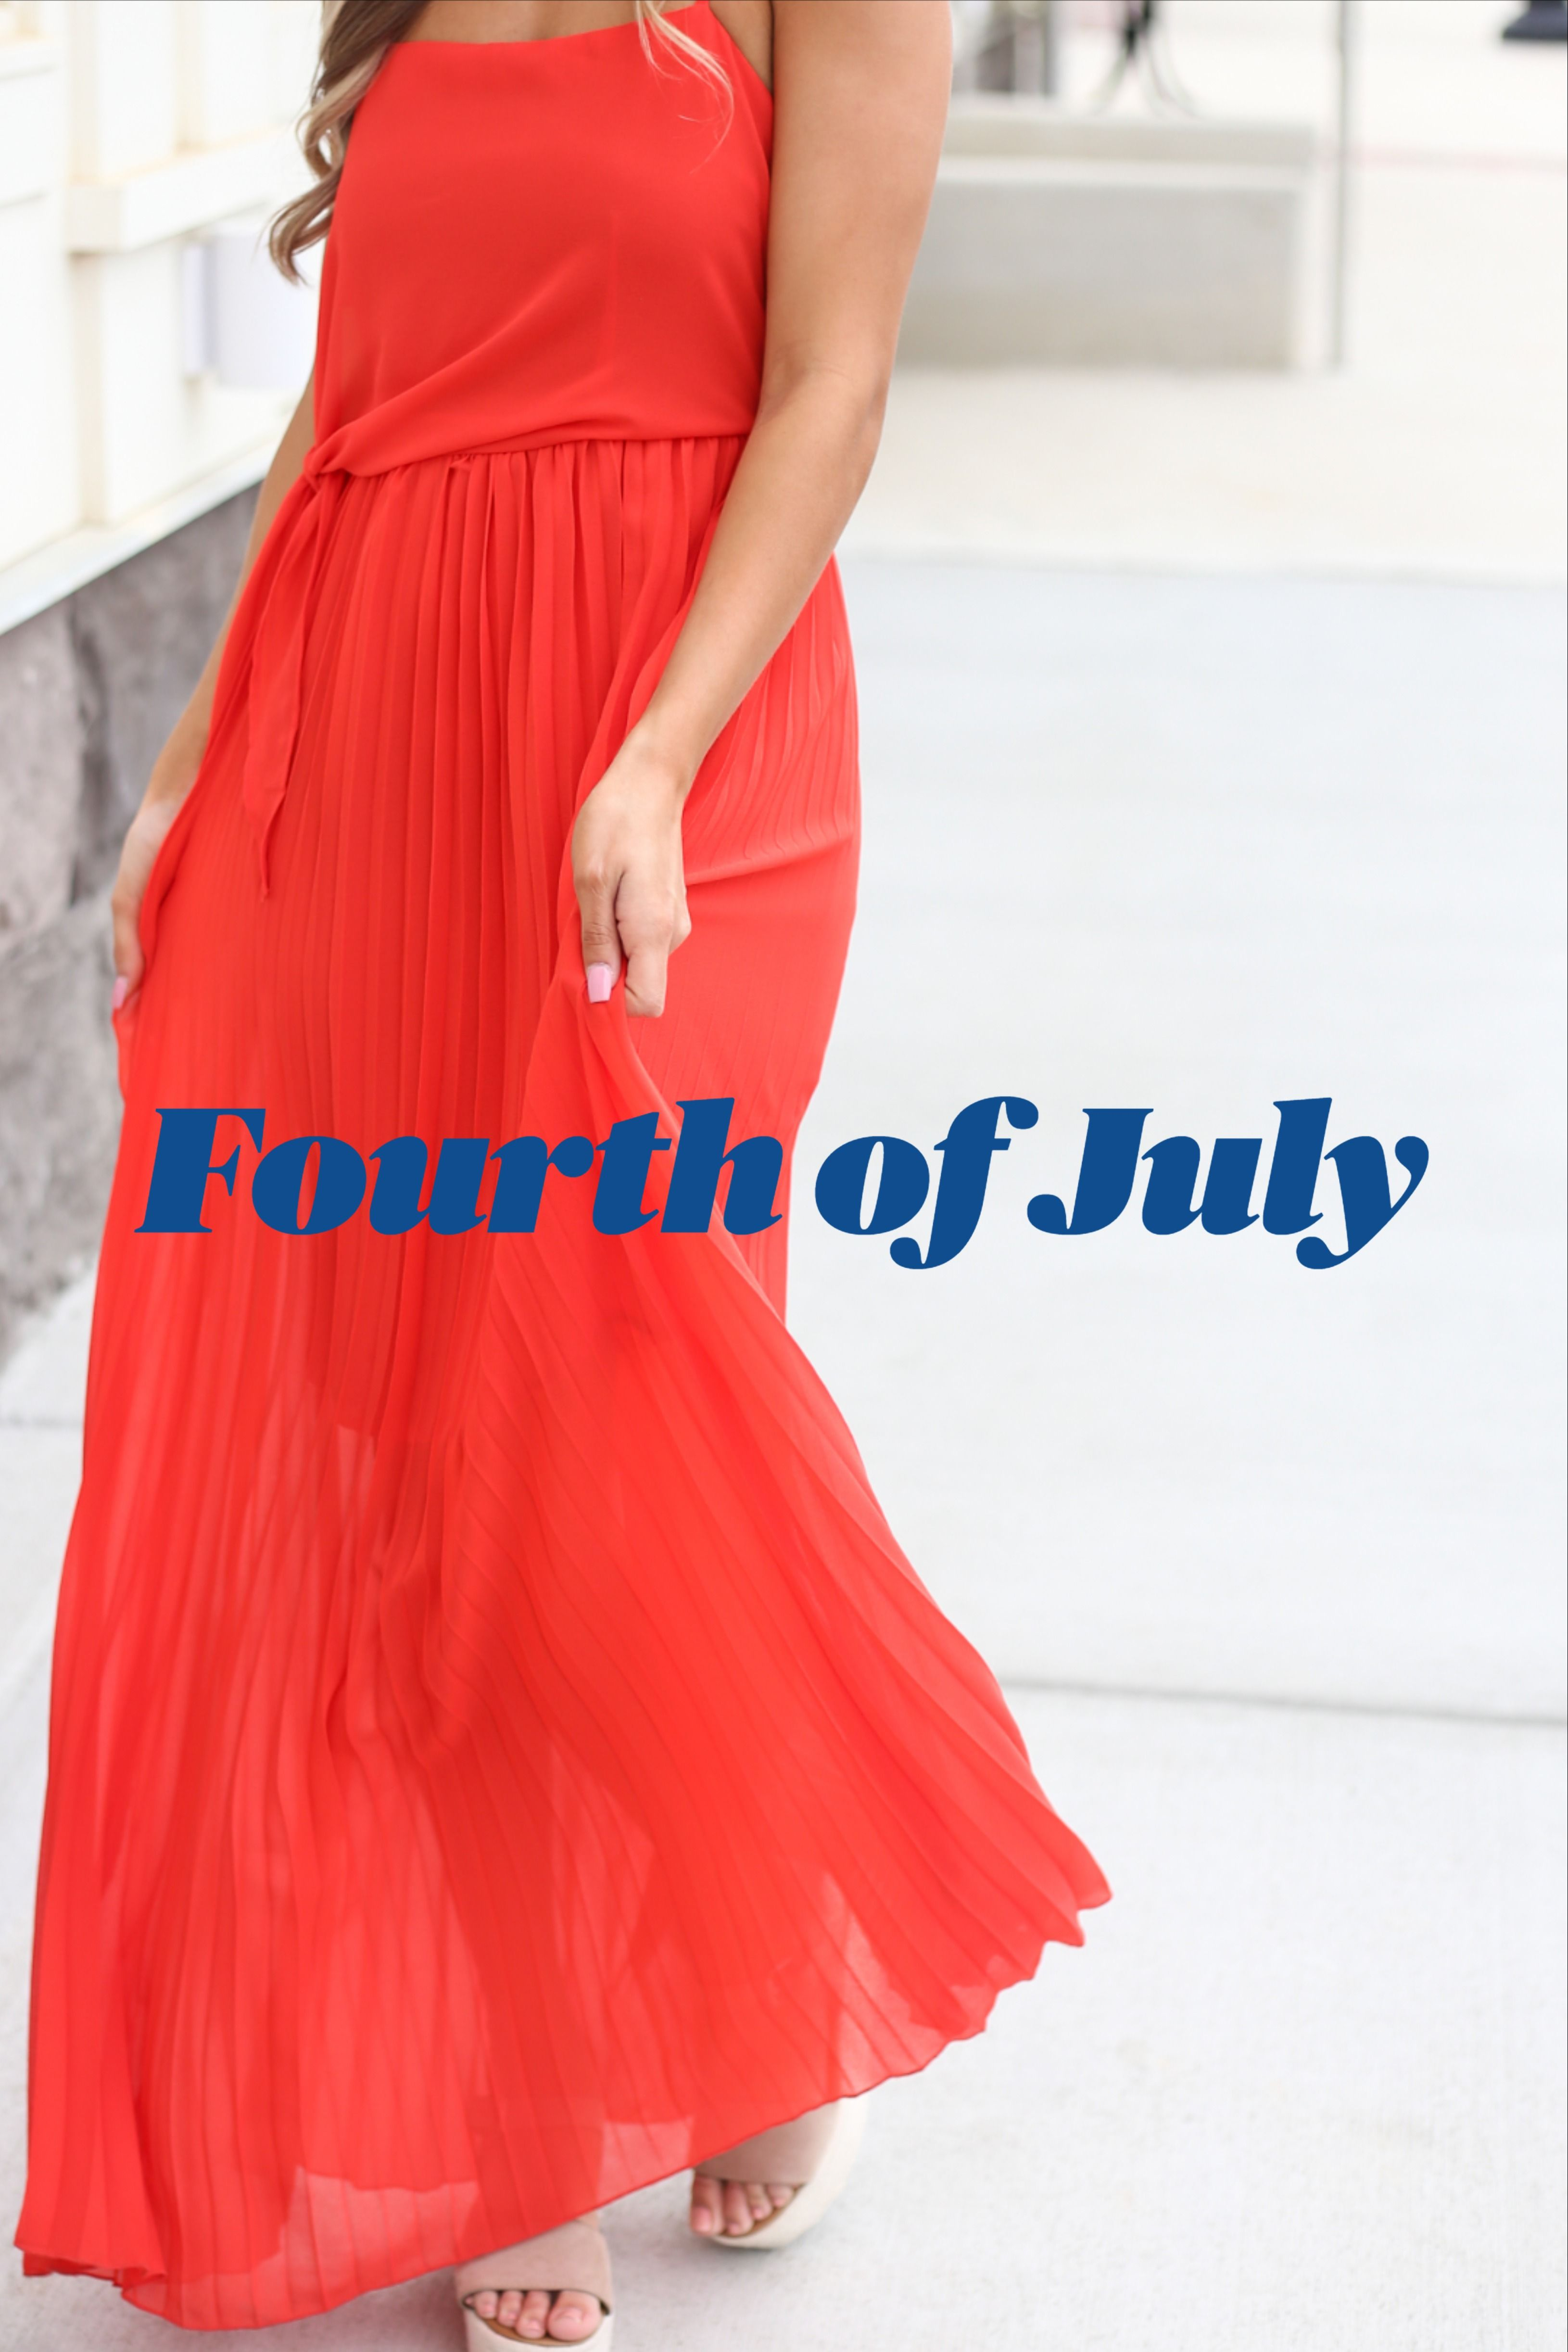 4th Of July Red Maxi Dress Red Dress Maxi Maxi Dress Casual Outfit Inspiration [ 4889 x 3260 Pixel ]